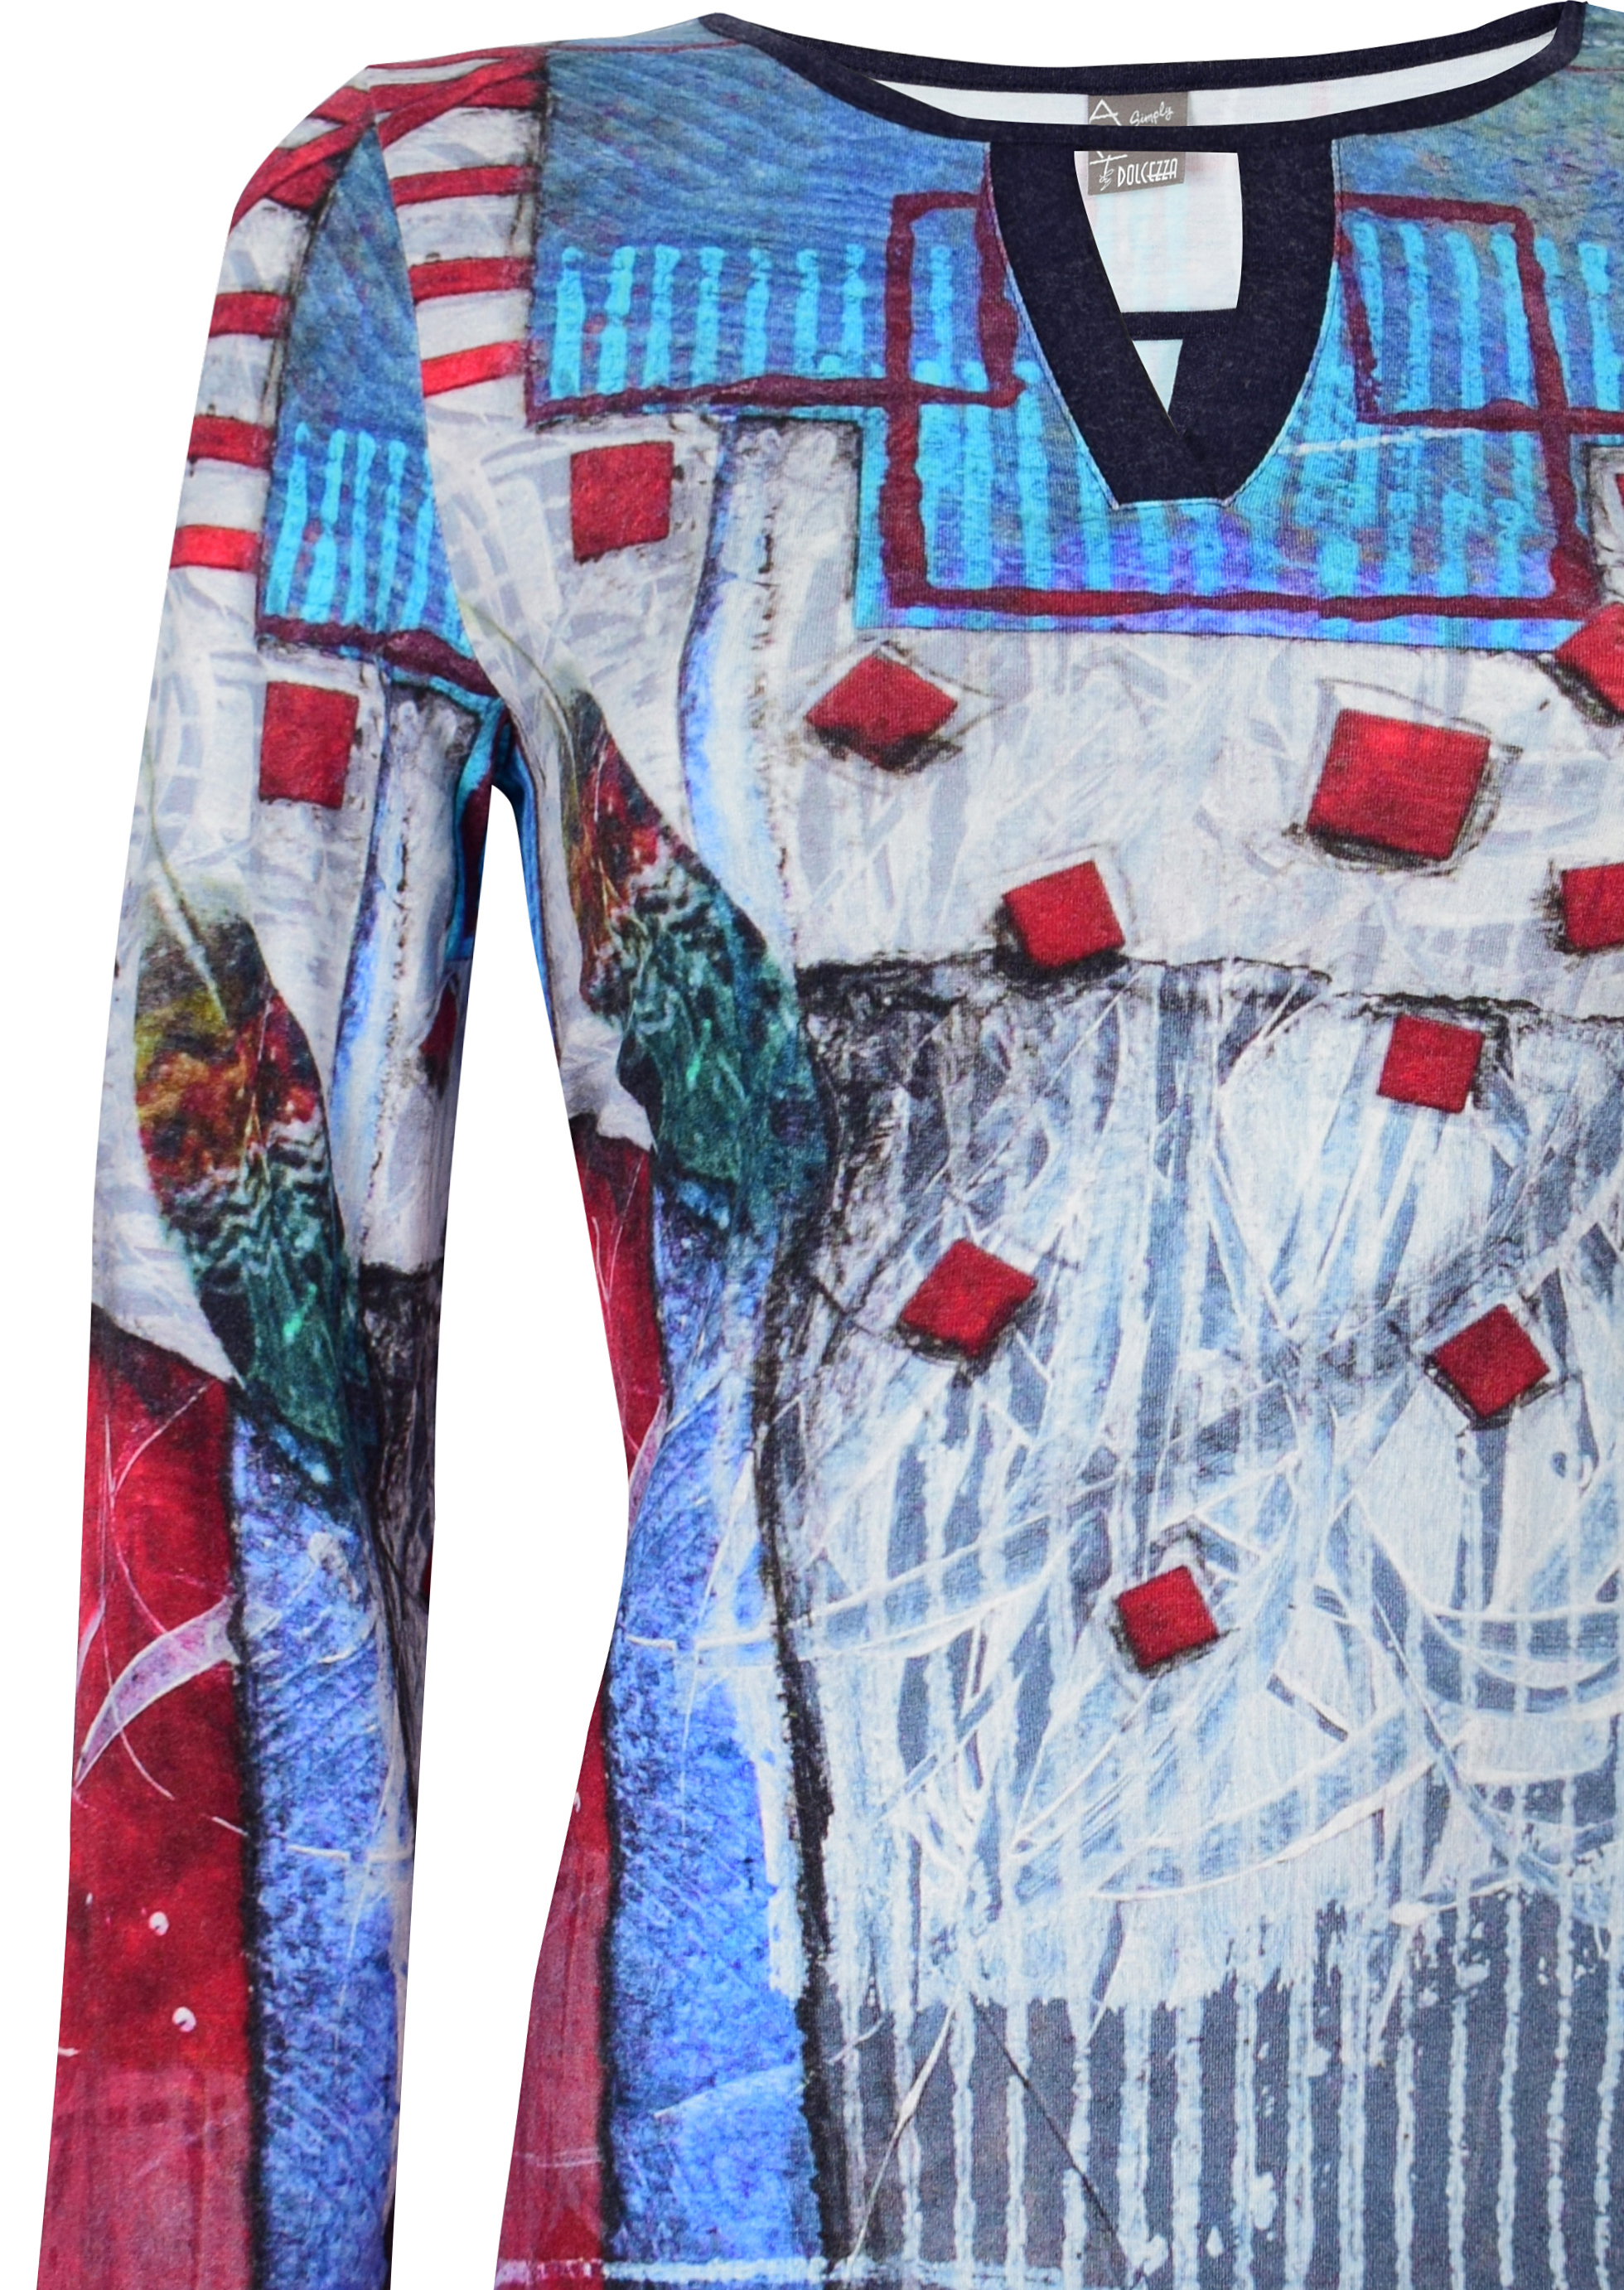 Simply Art Dolcezza: Only Love Spiritually Square Abstract Art Tunic (1 Left!)